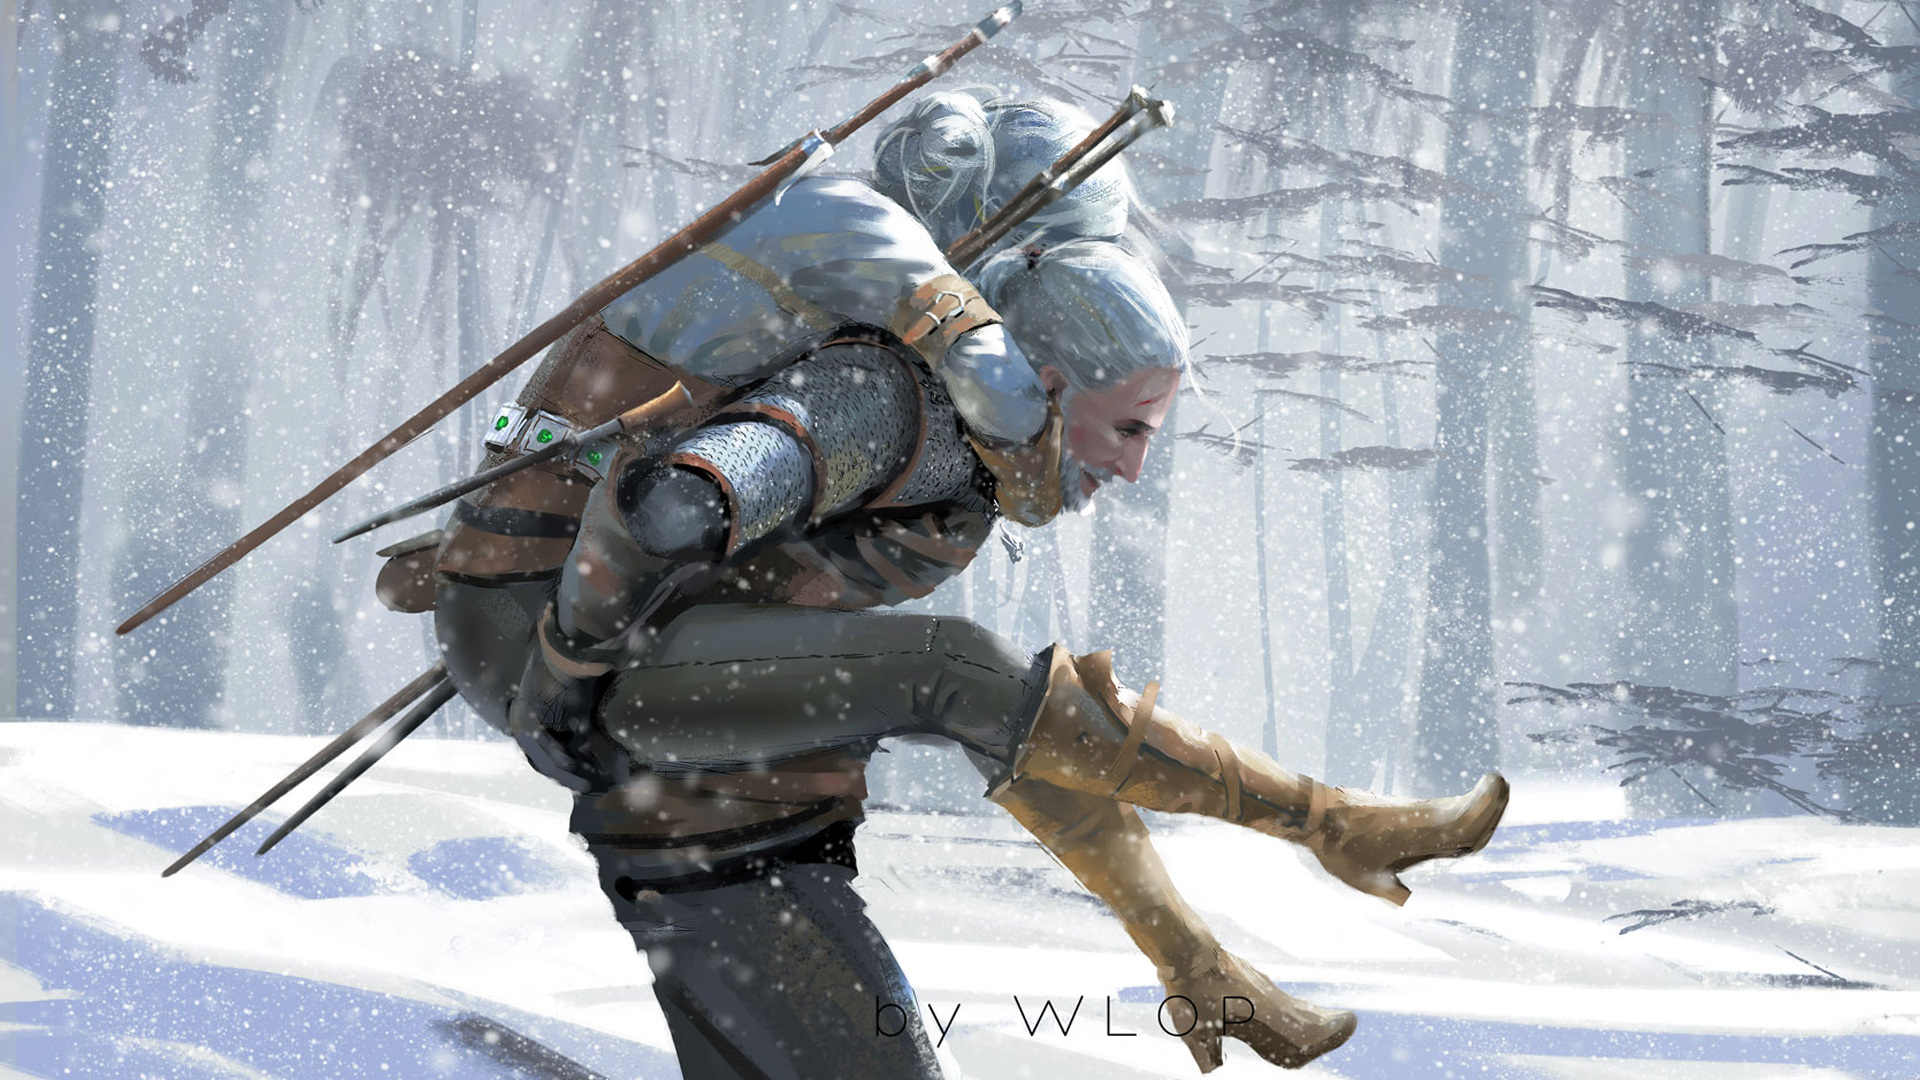 1920x1080 the witcher 3 wild hunt artwork by wlop laptop full hd 1080p hd 4k wallpapers  images